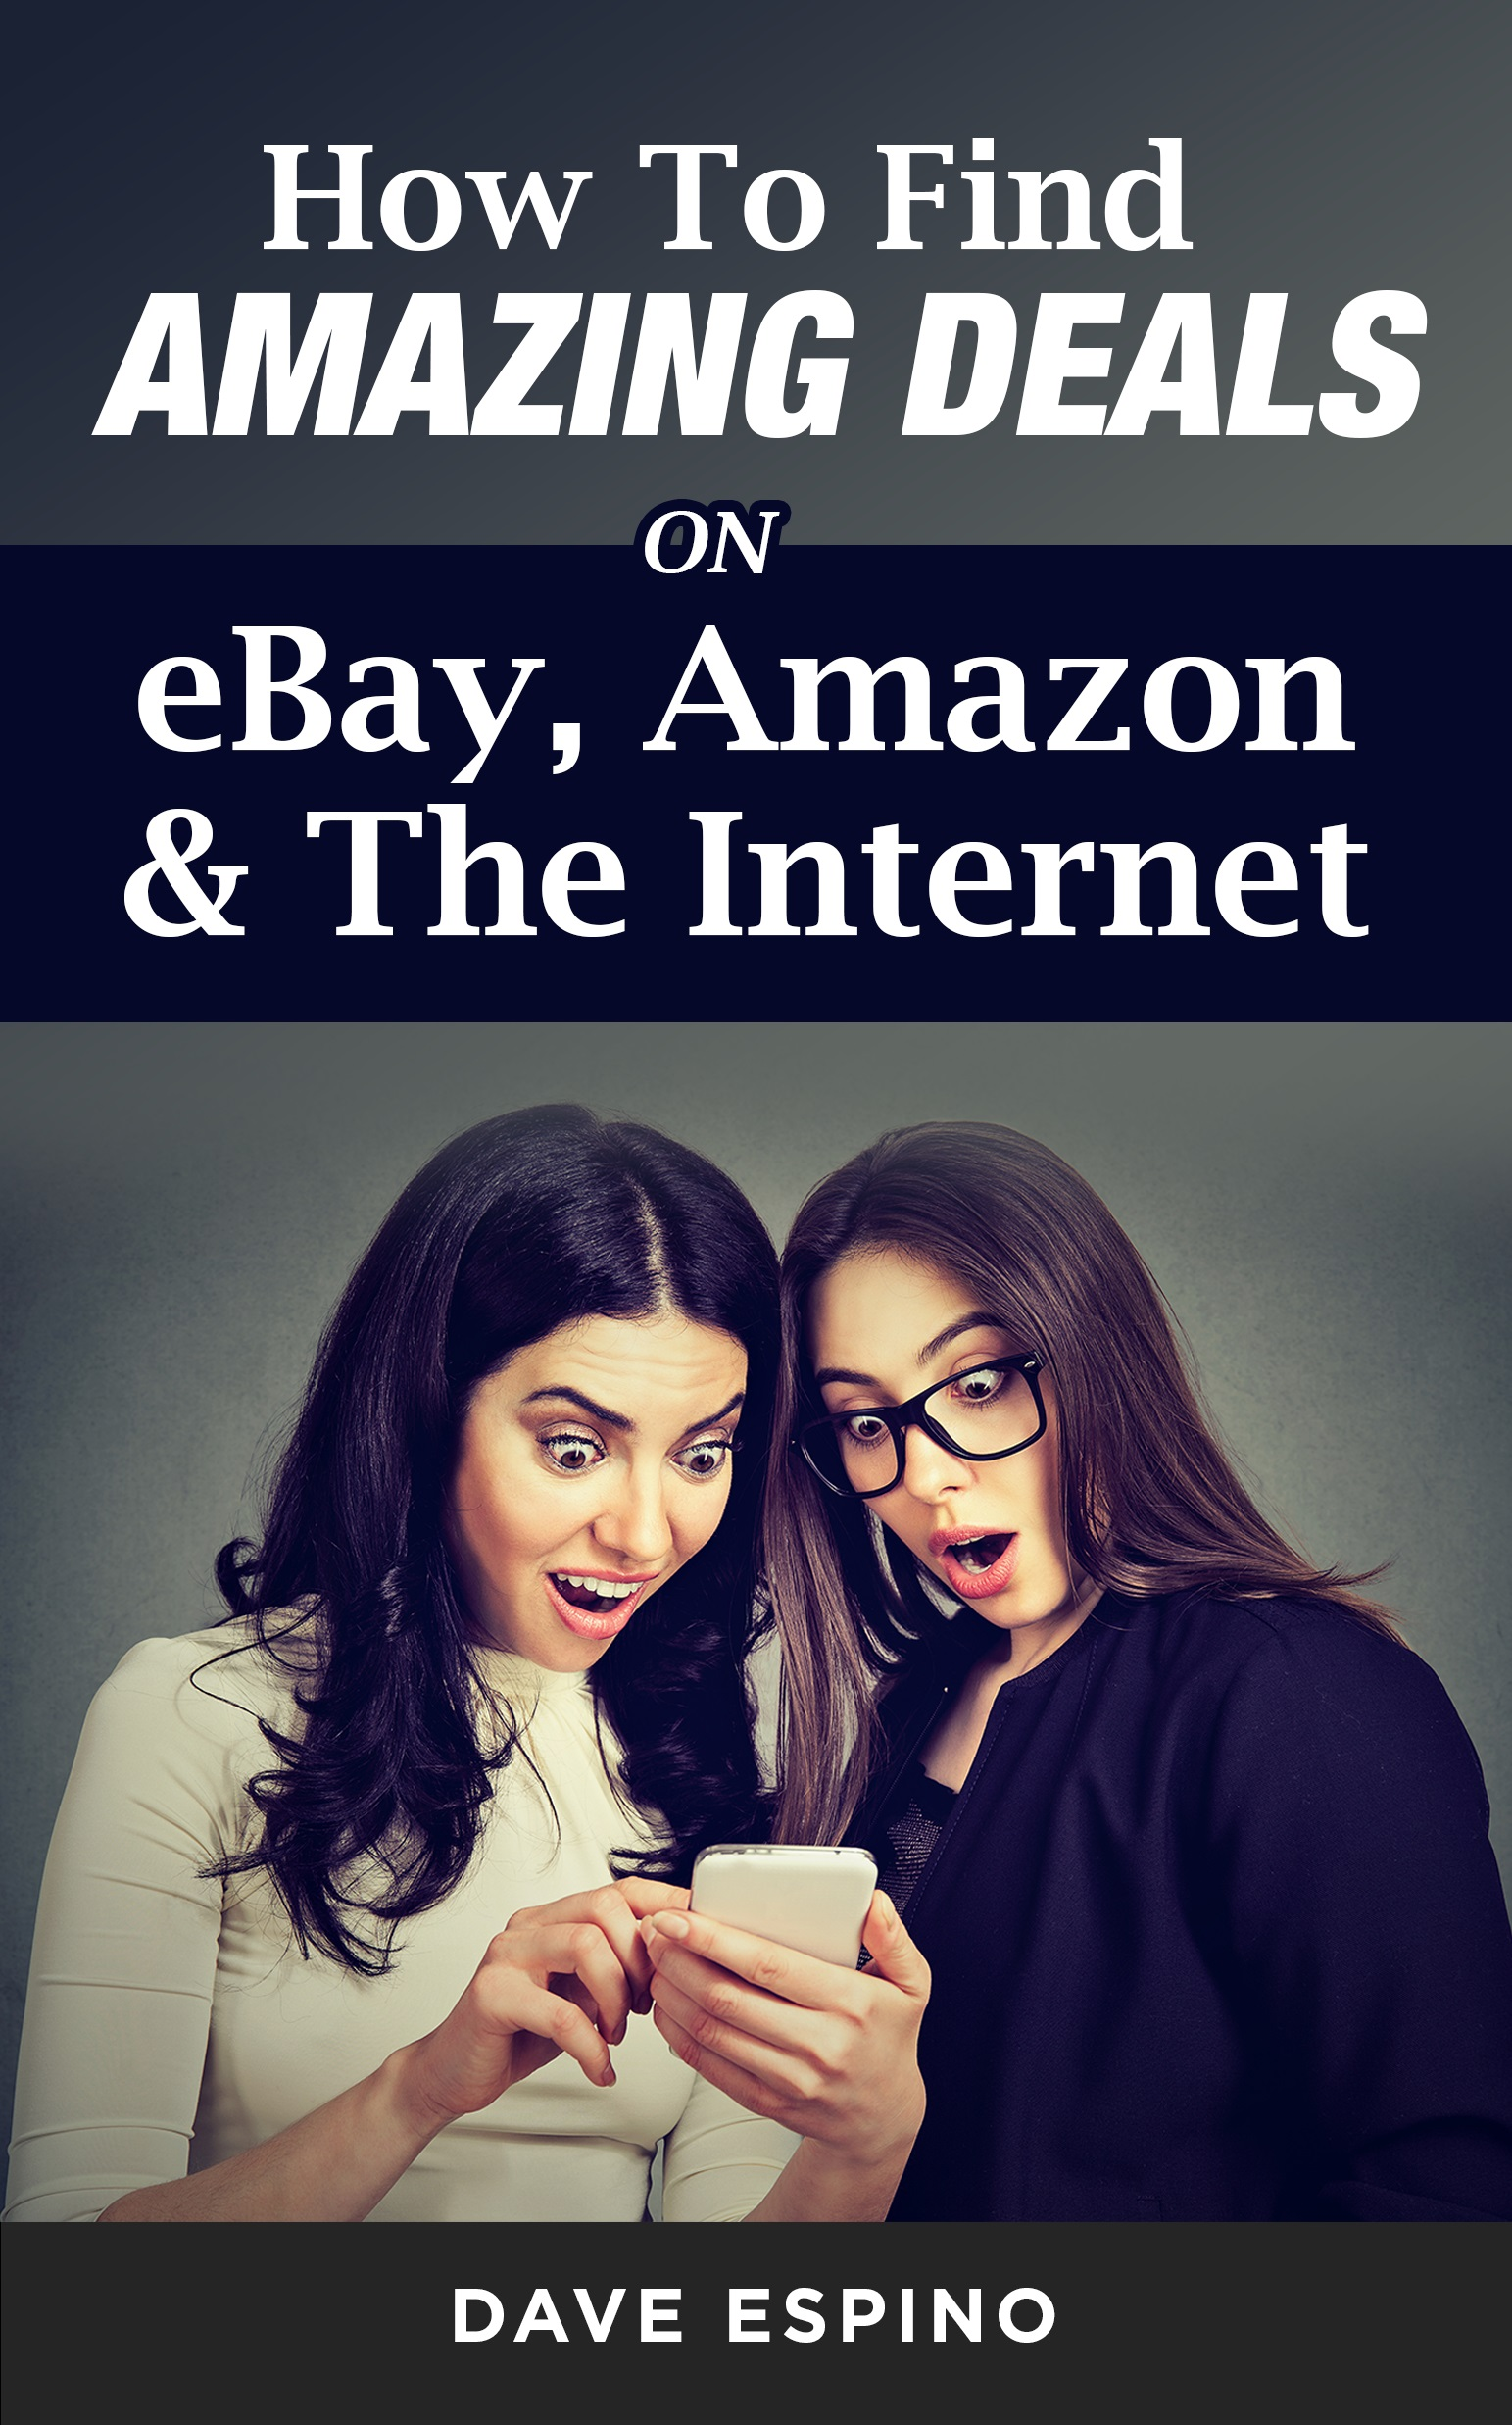 How To Find Amazing Deals On eBay, Amazon & The Internet (Online Video Course) [Online Code]